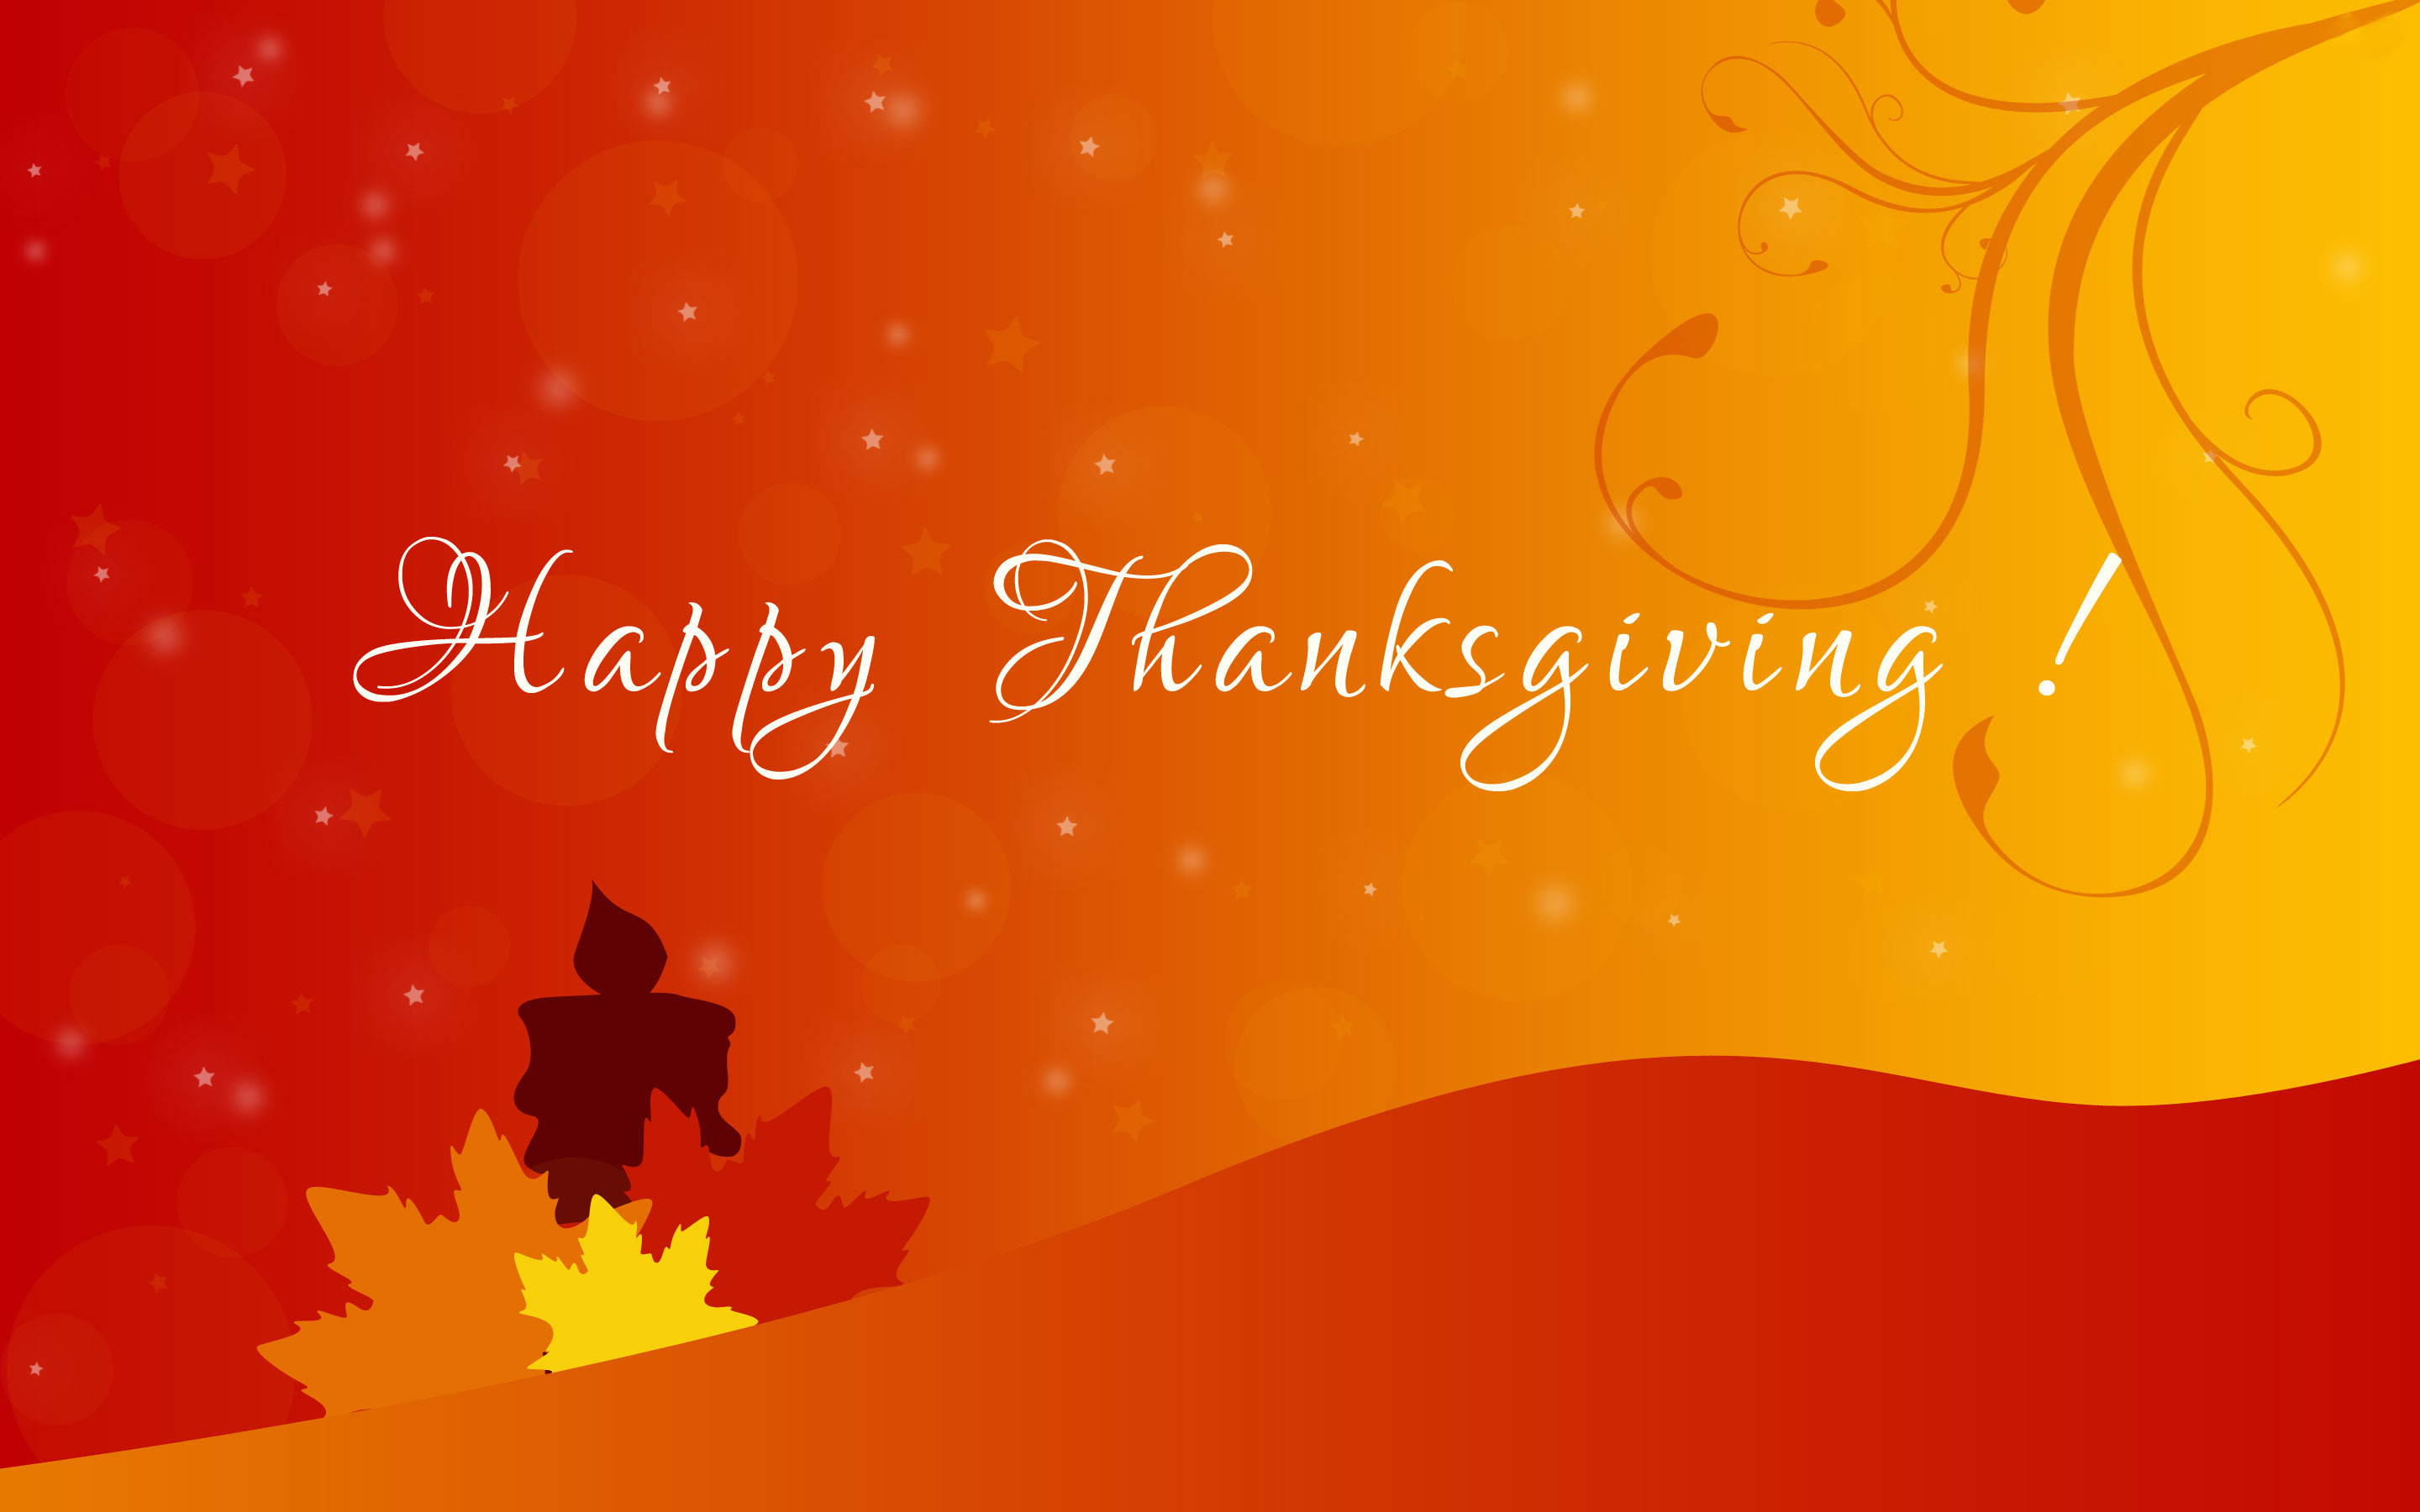 Thanksgiving wallpapers backgrounds